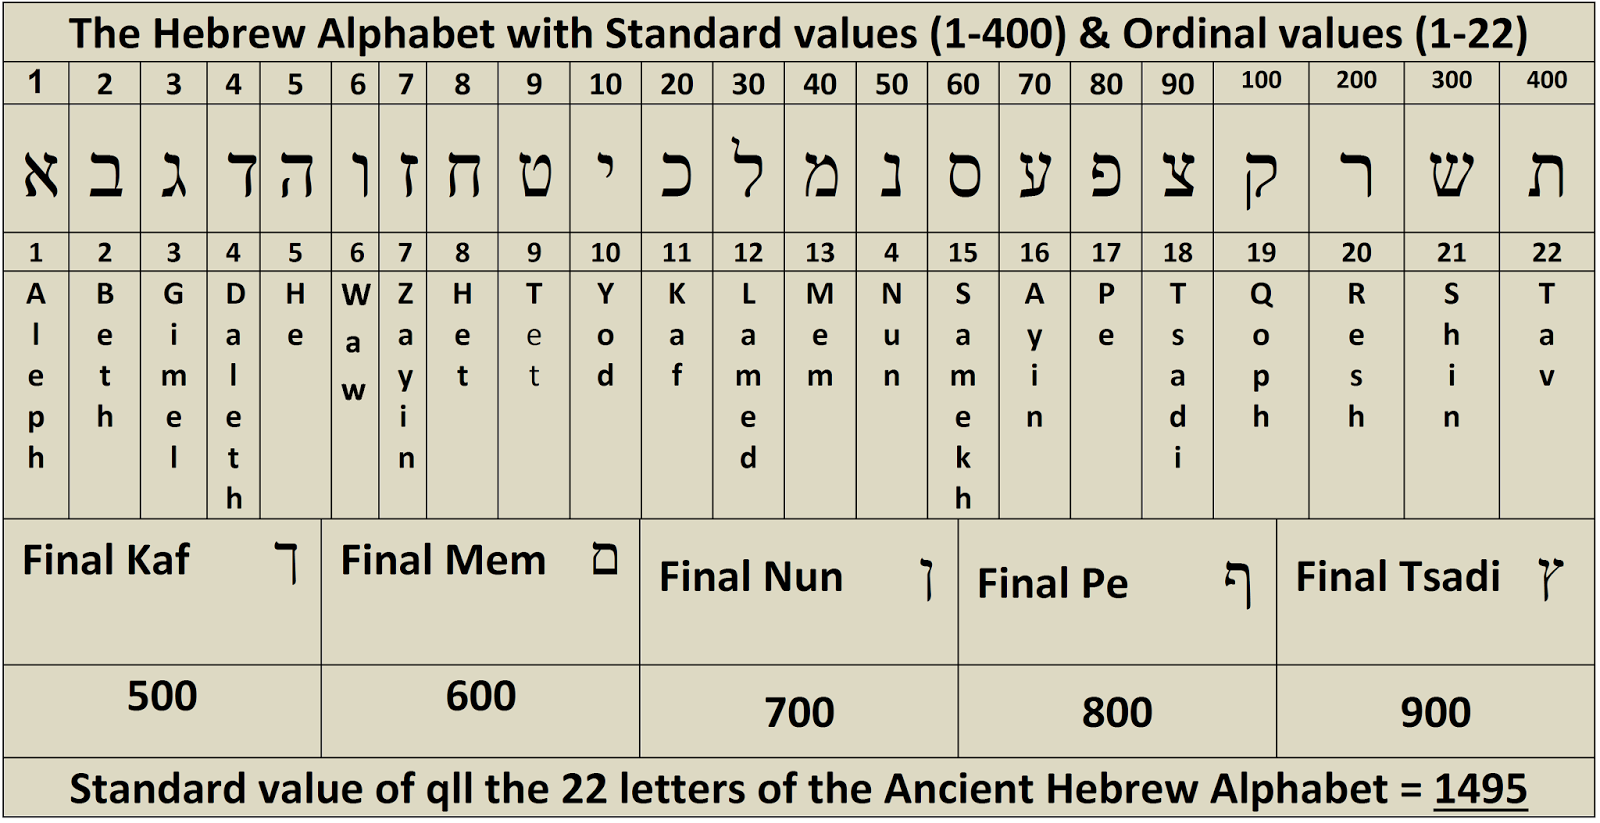 Numerical Miracles in the Bible's first verse 1:1¨